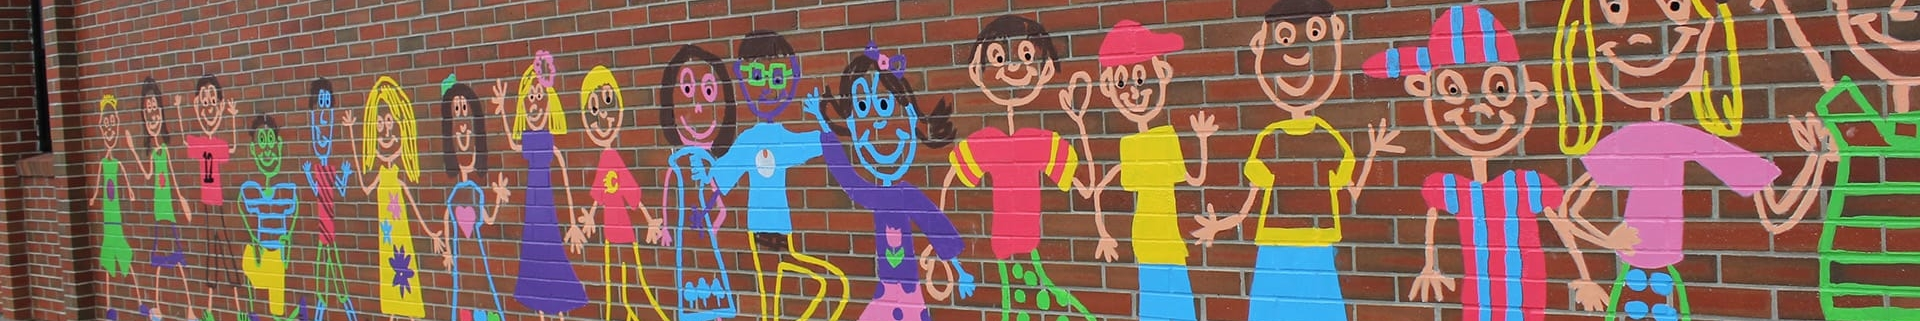 Brick wall with colourful paintings of schoolchildren smiling and waving